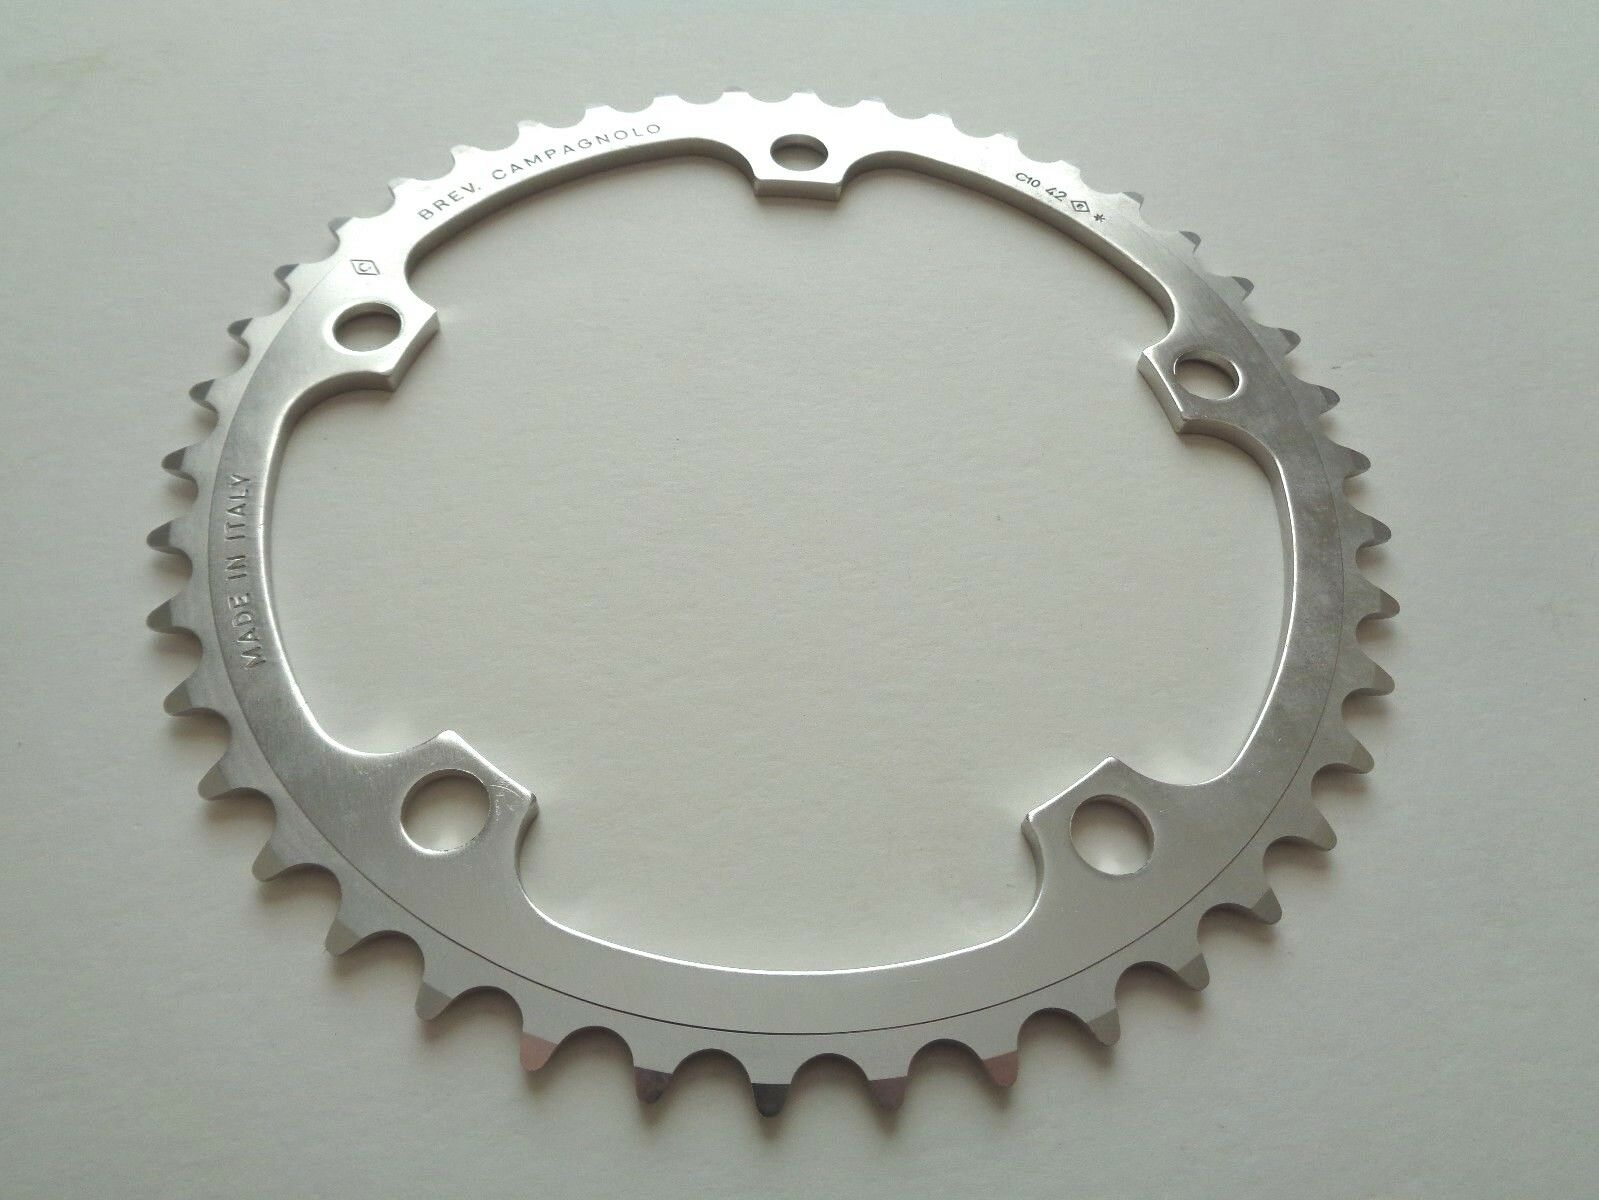 NOS Vintage Campagnolo 10 Speed 42T 3 32 aluminium chainring - 135BCD